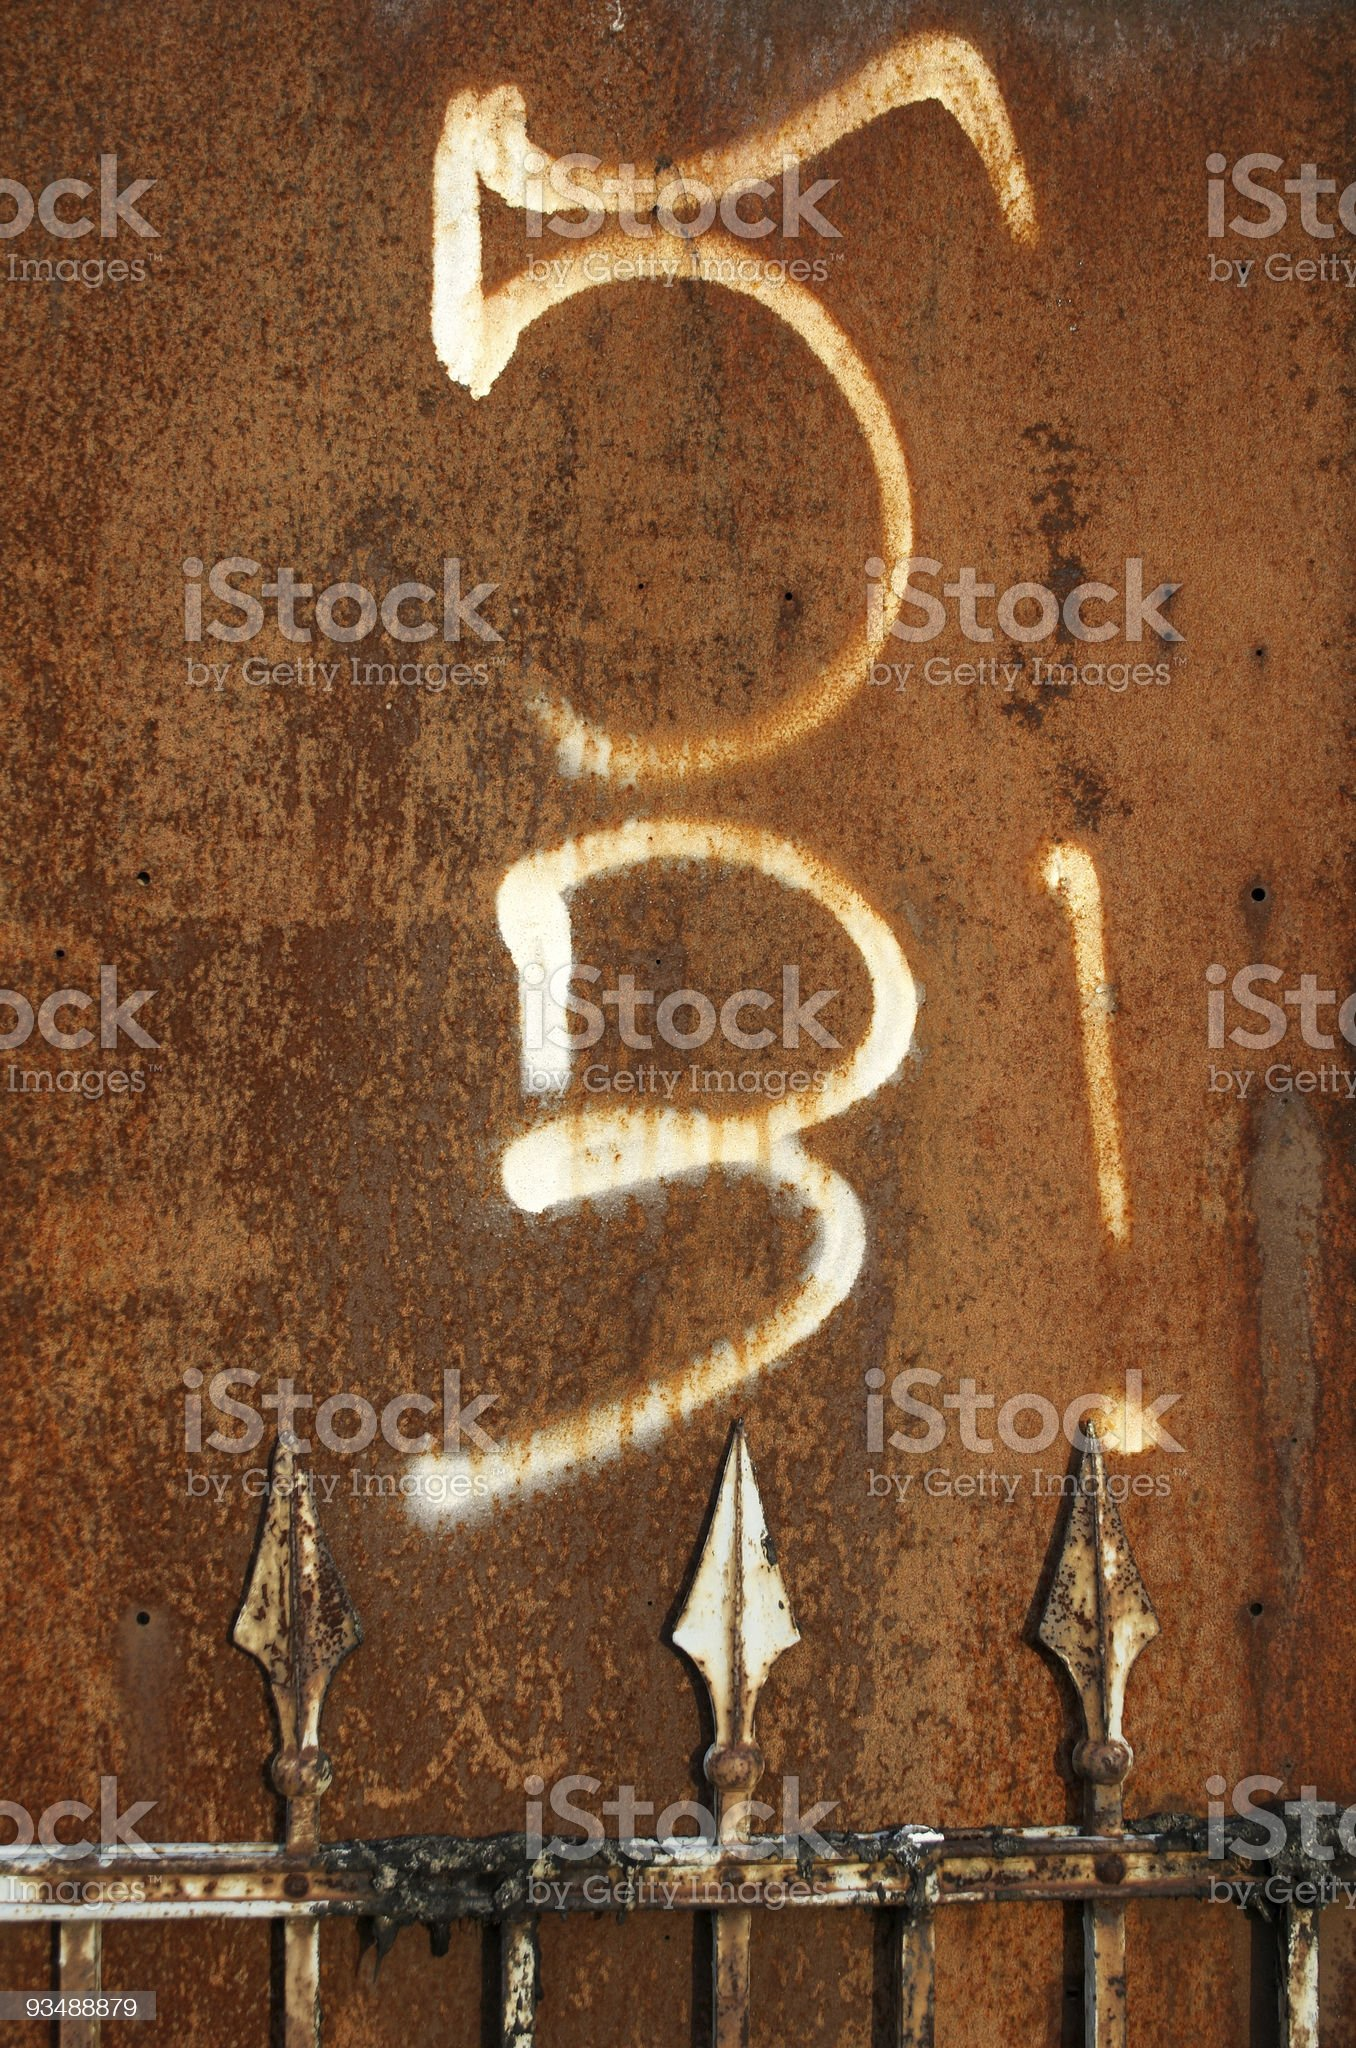 Rusty Metal with Numbers royalty-free stock photo